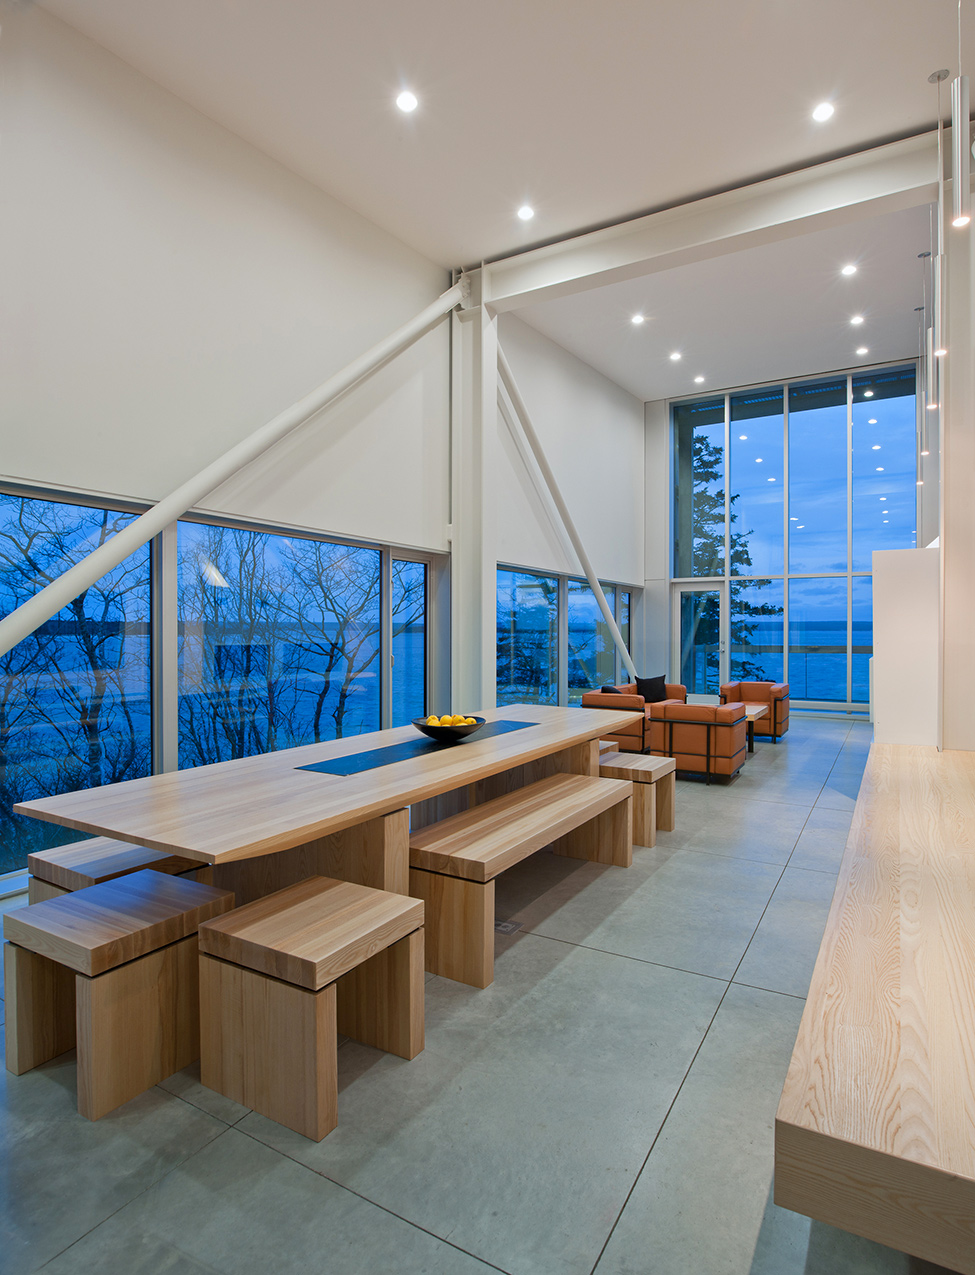 Wooden interior and view evening